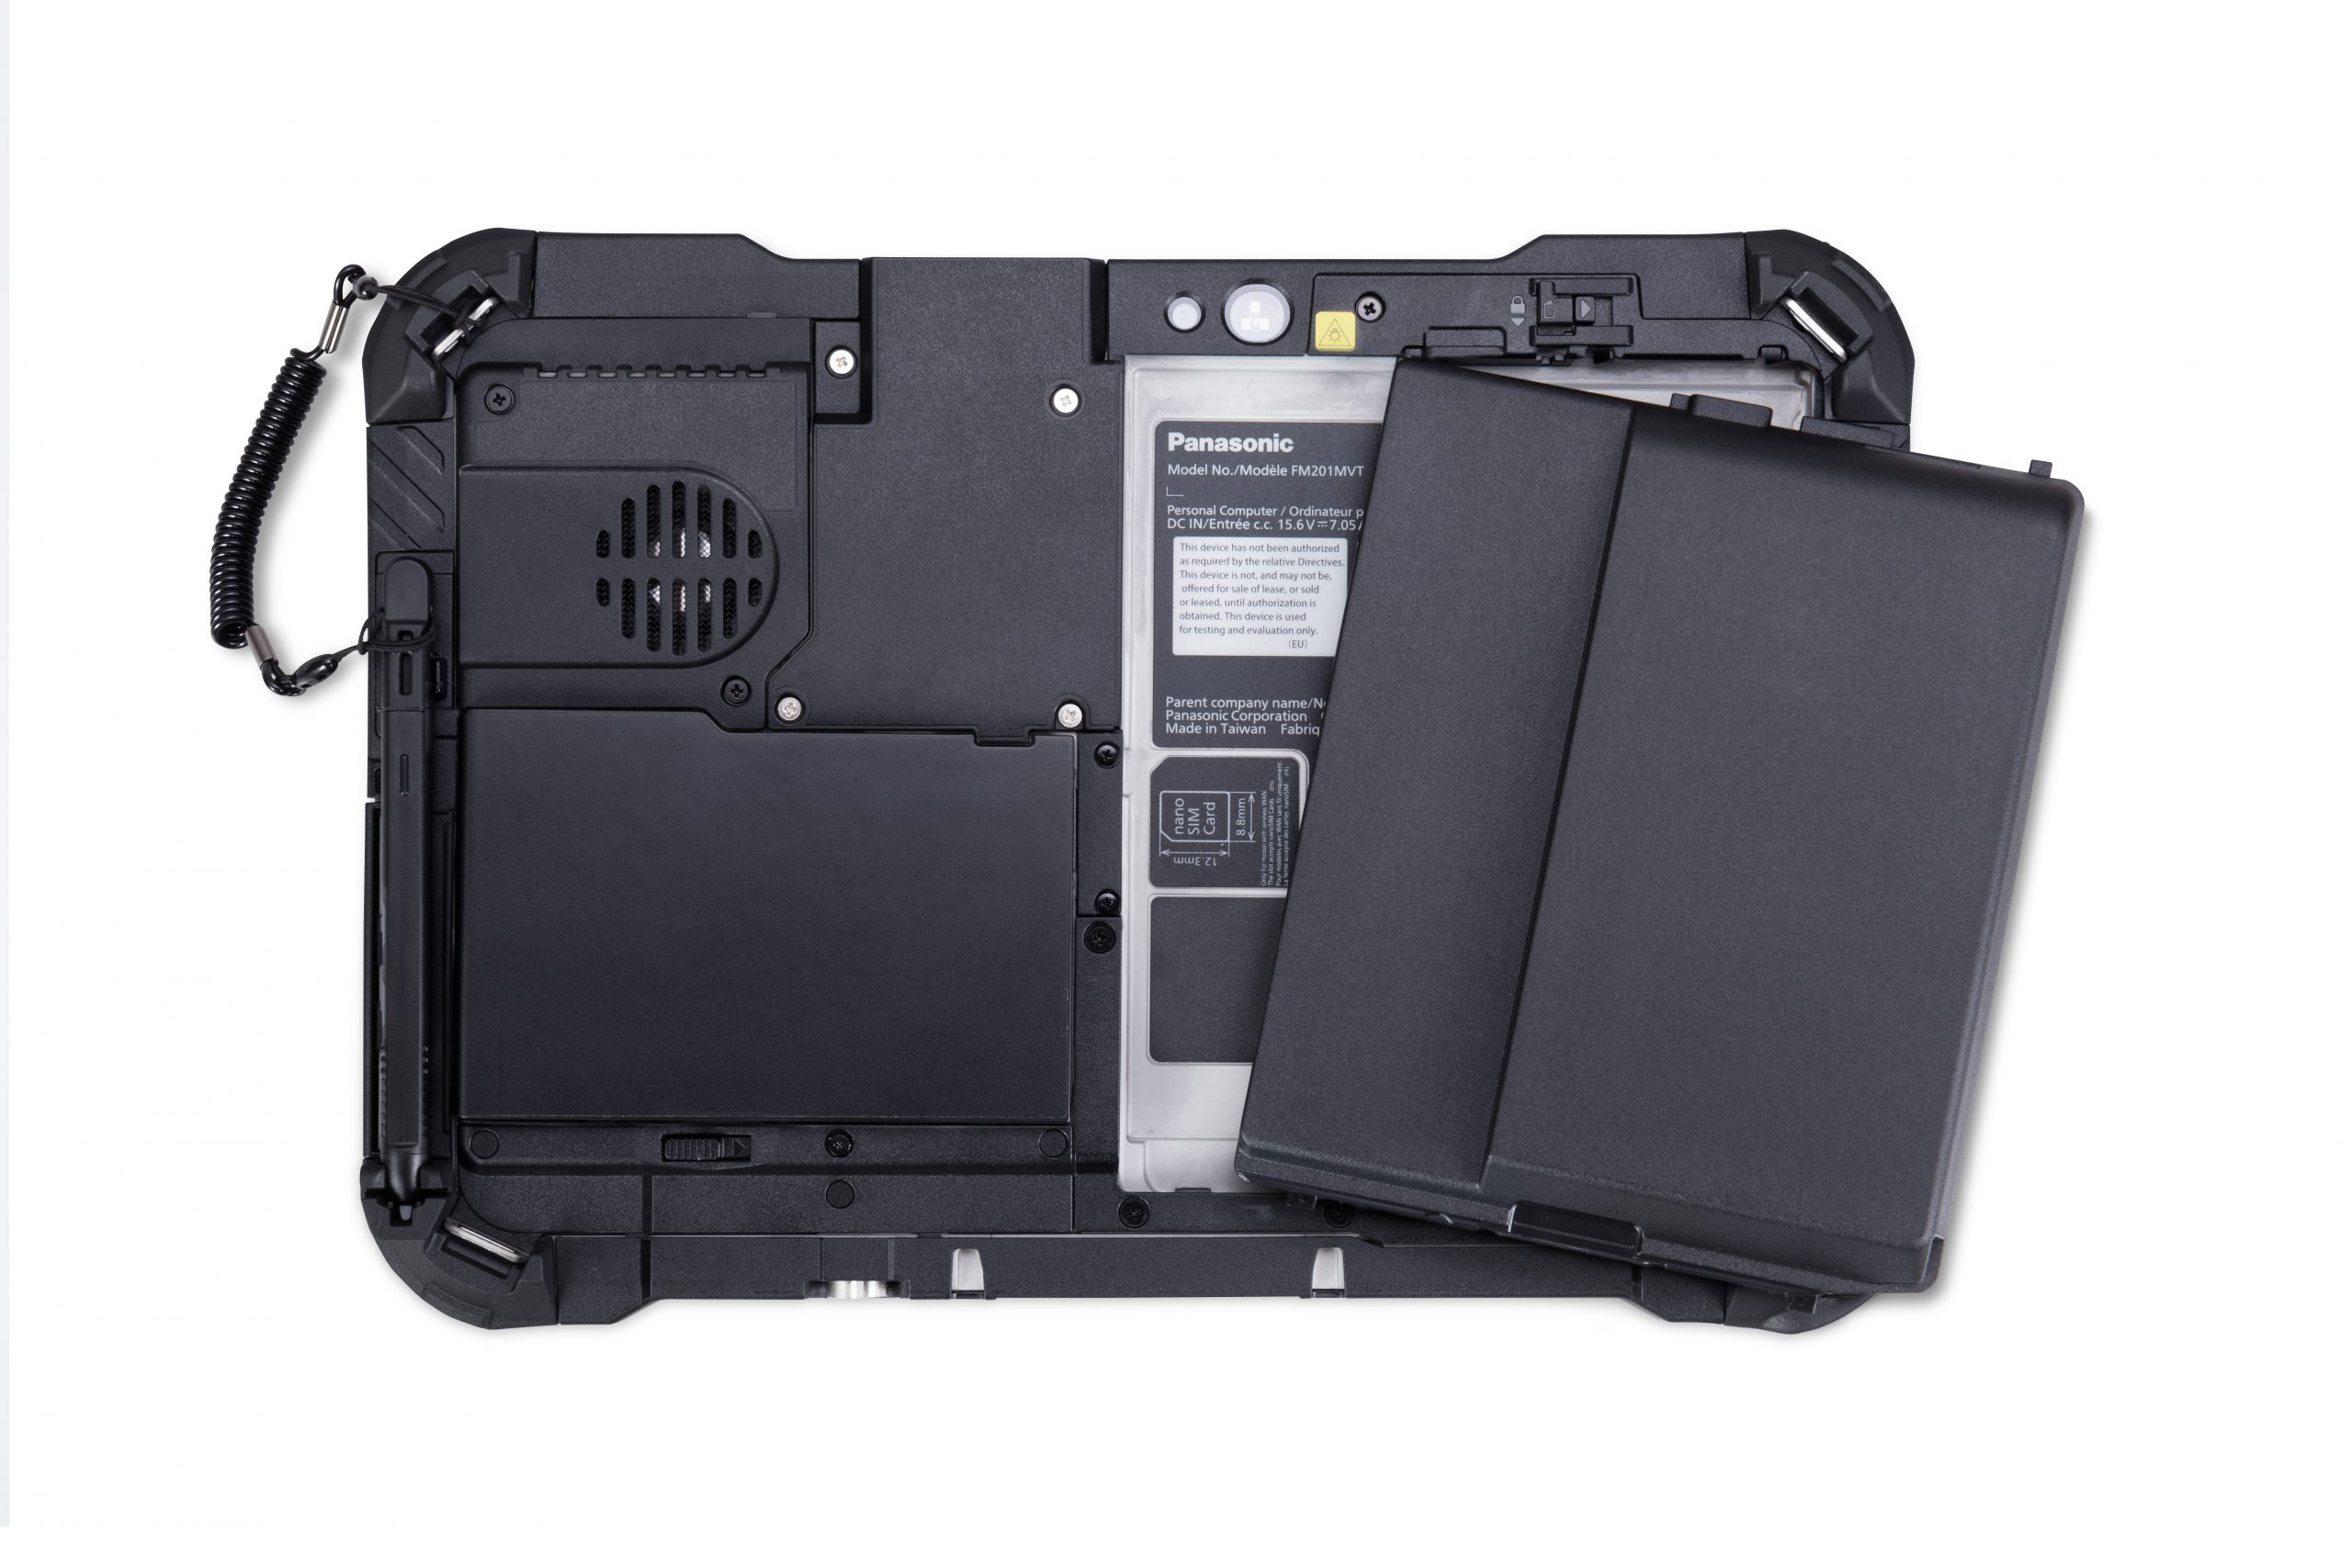 toughbook g2 full rear with large battery scaled Panasonics Toughbook G2 Is Designed For Rough Use